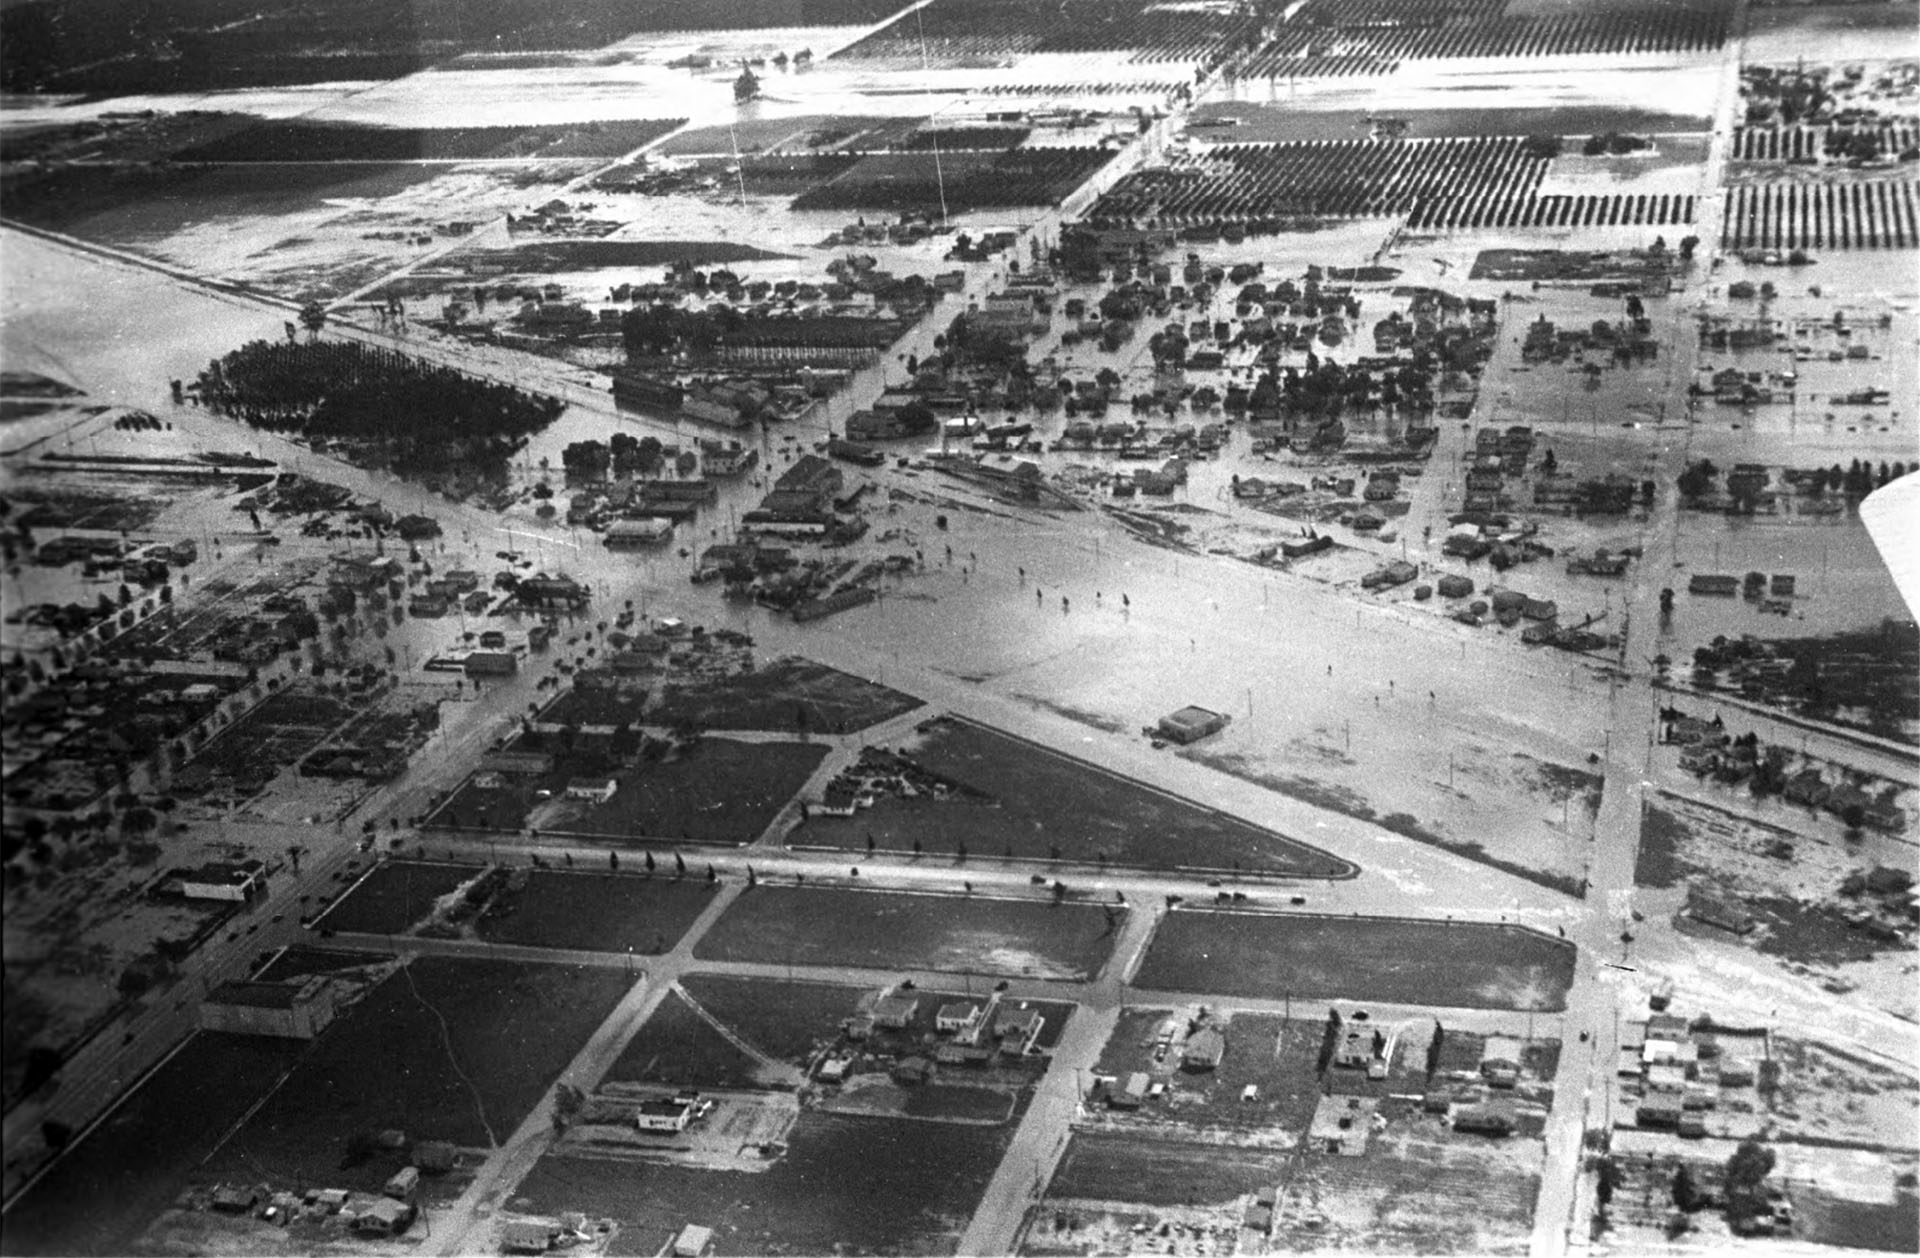 Flooded houses and farms in North Hollywood in March 1938